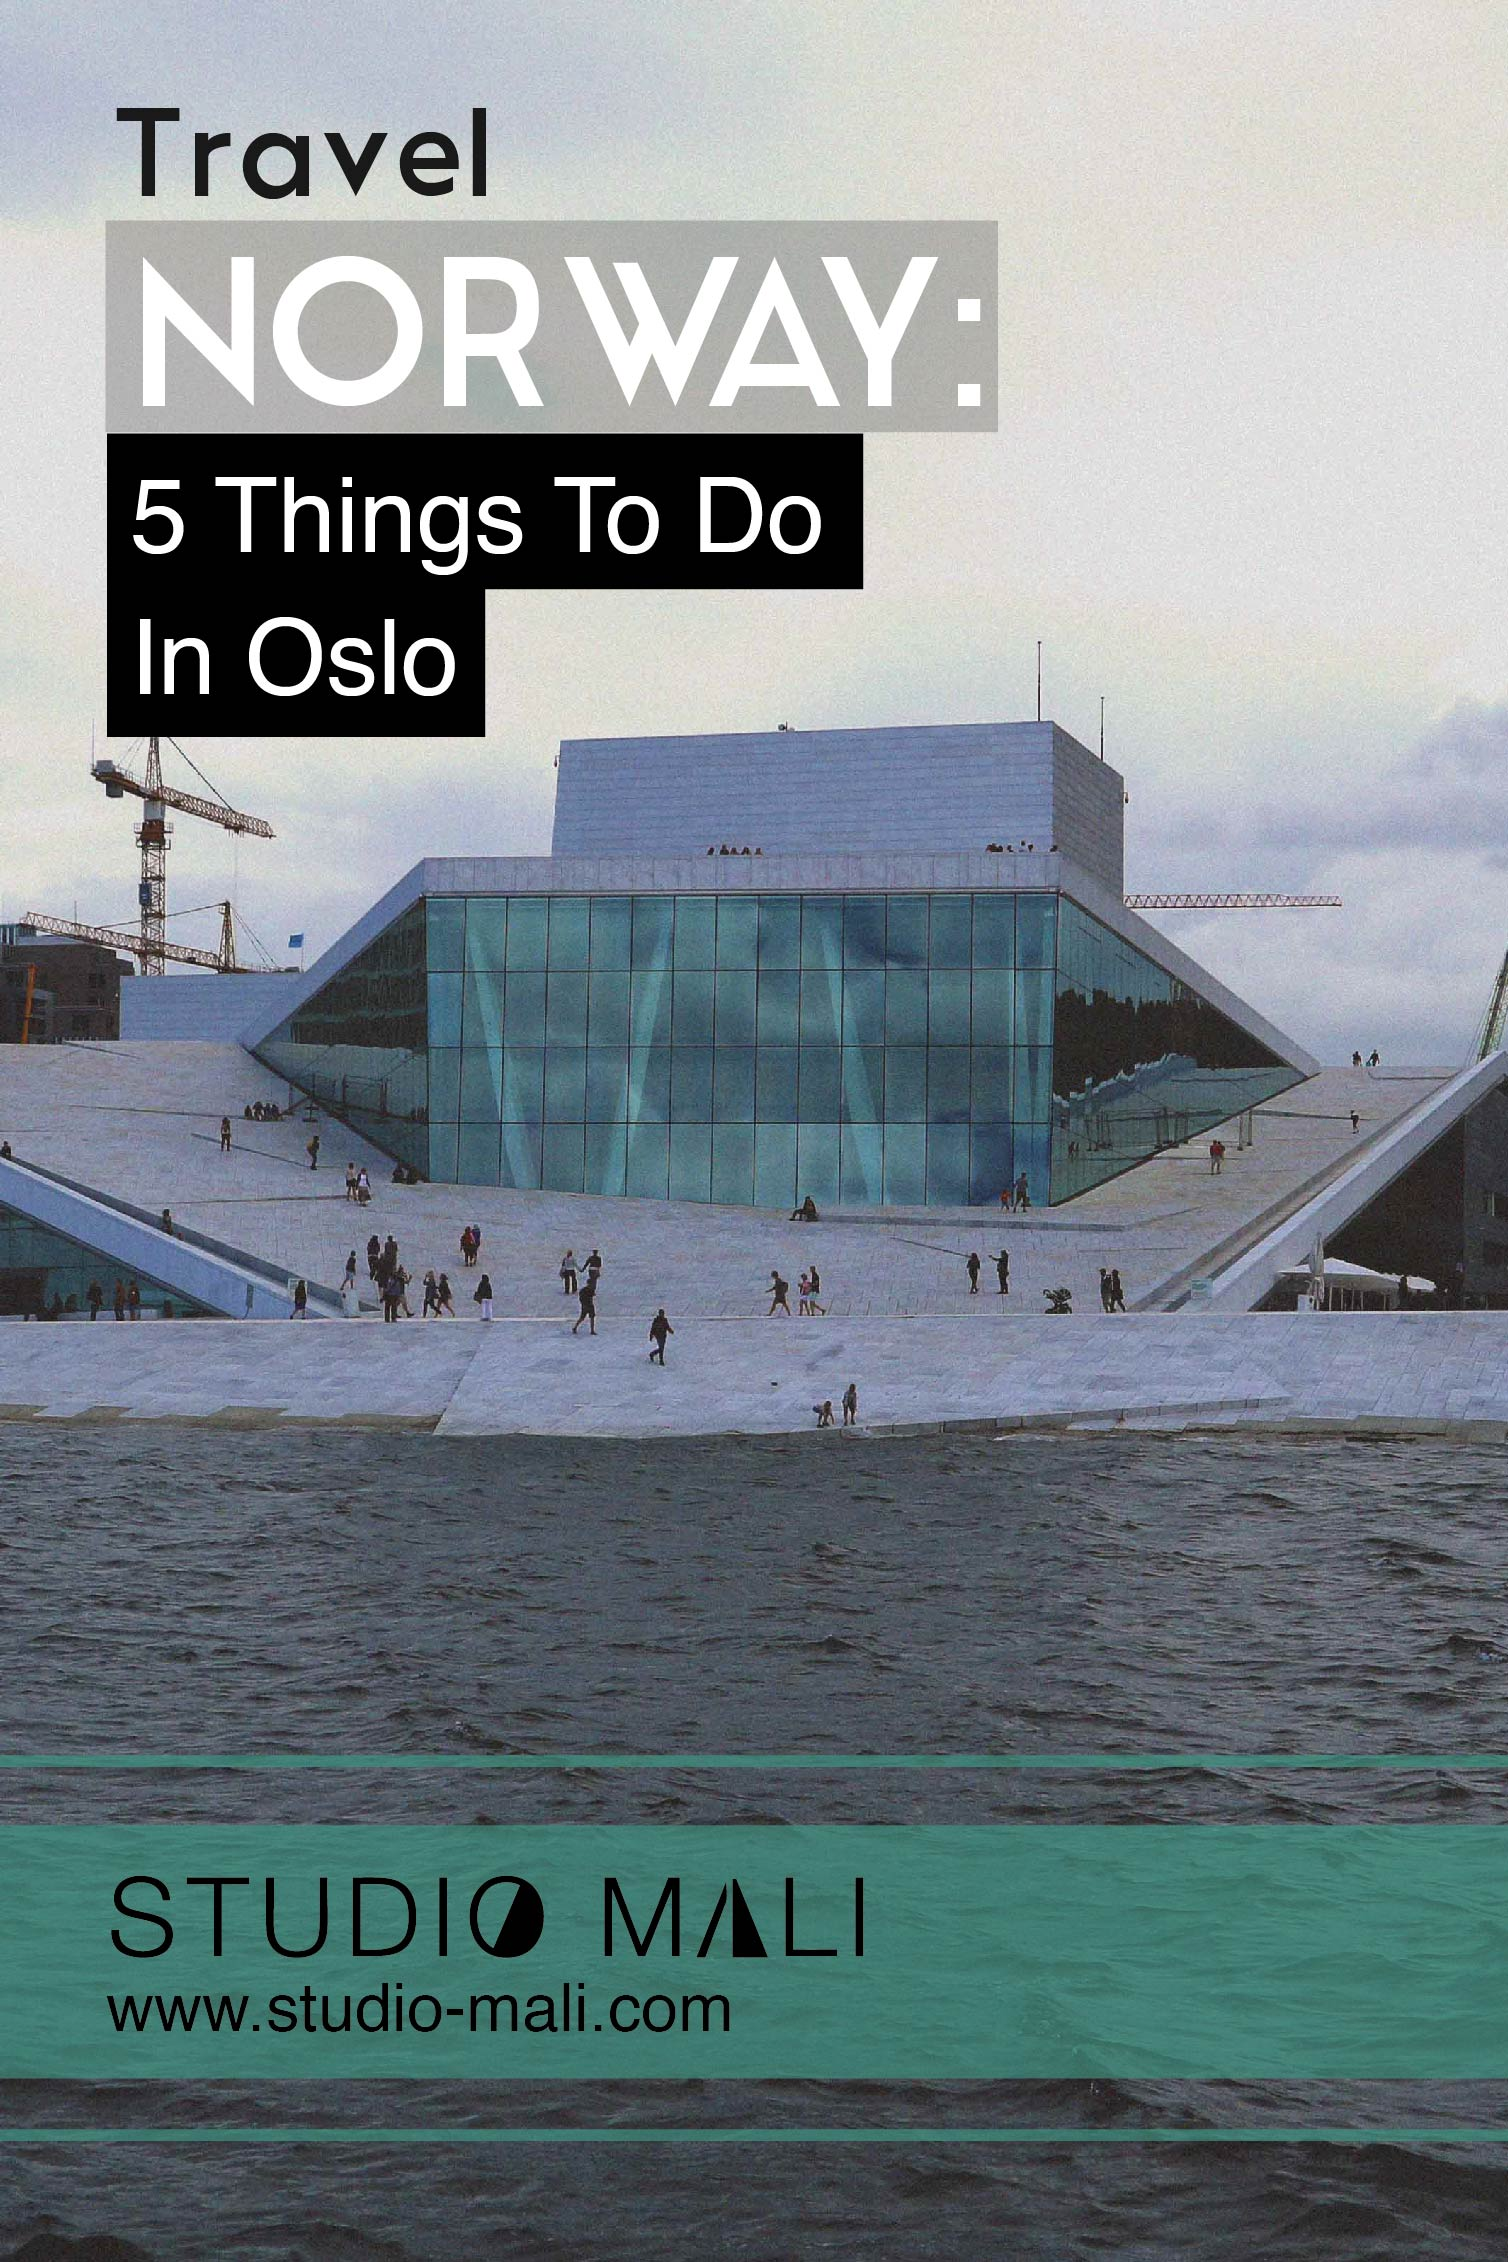 Norway - 5 Things To Do In Oslo, by Studio Mali